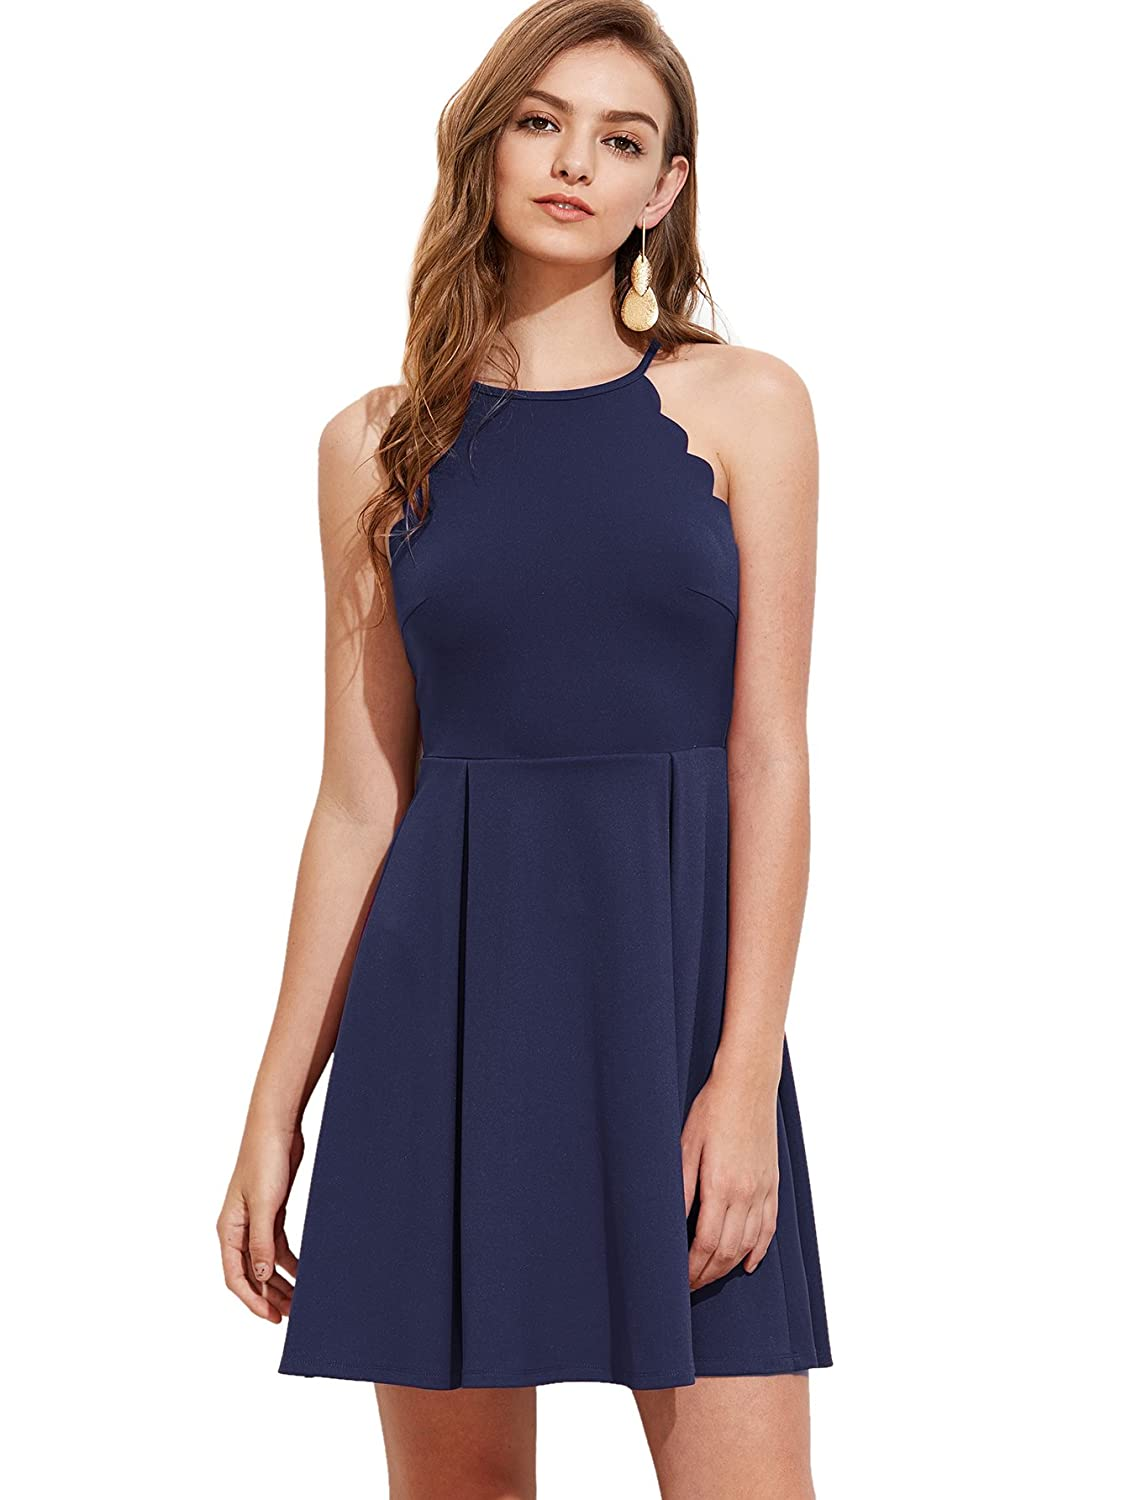 37db7a6230 Romwe Women s Sweet Scallop Sleeveless Flared Swing Pleated A-Line Skater  Dress  Amazon.ca  Clothing   Accessories